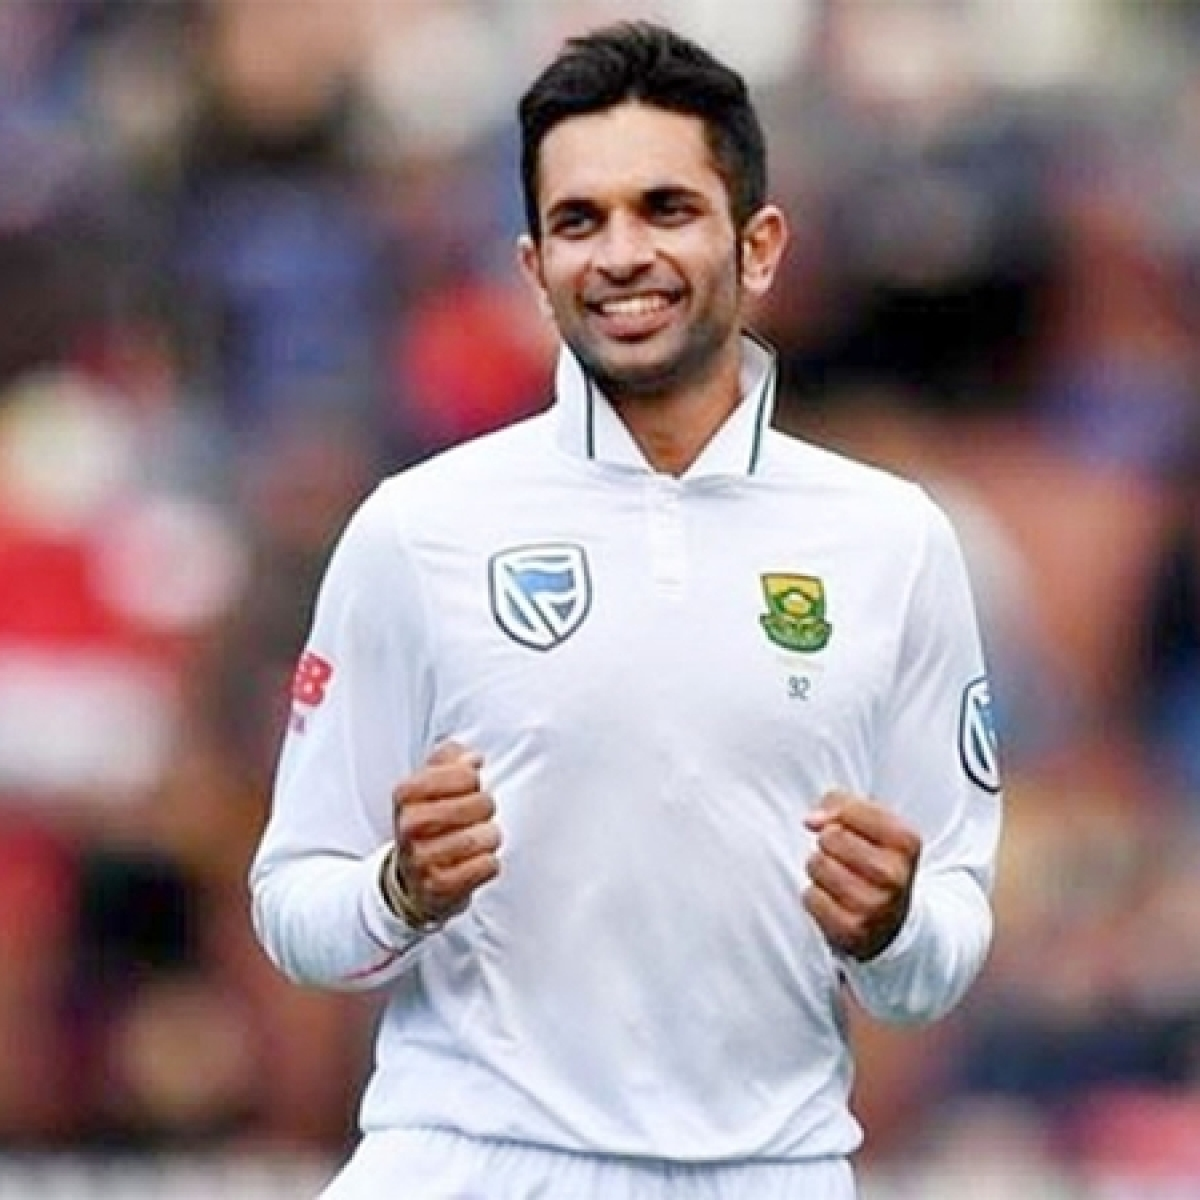 South Africa's Keshav Maharaj ruled out of third Test